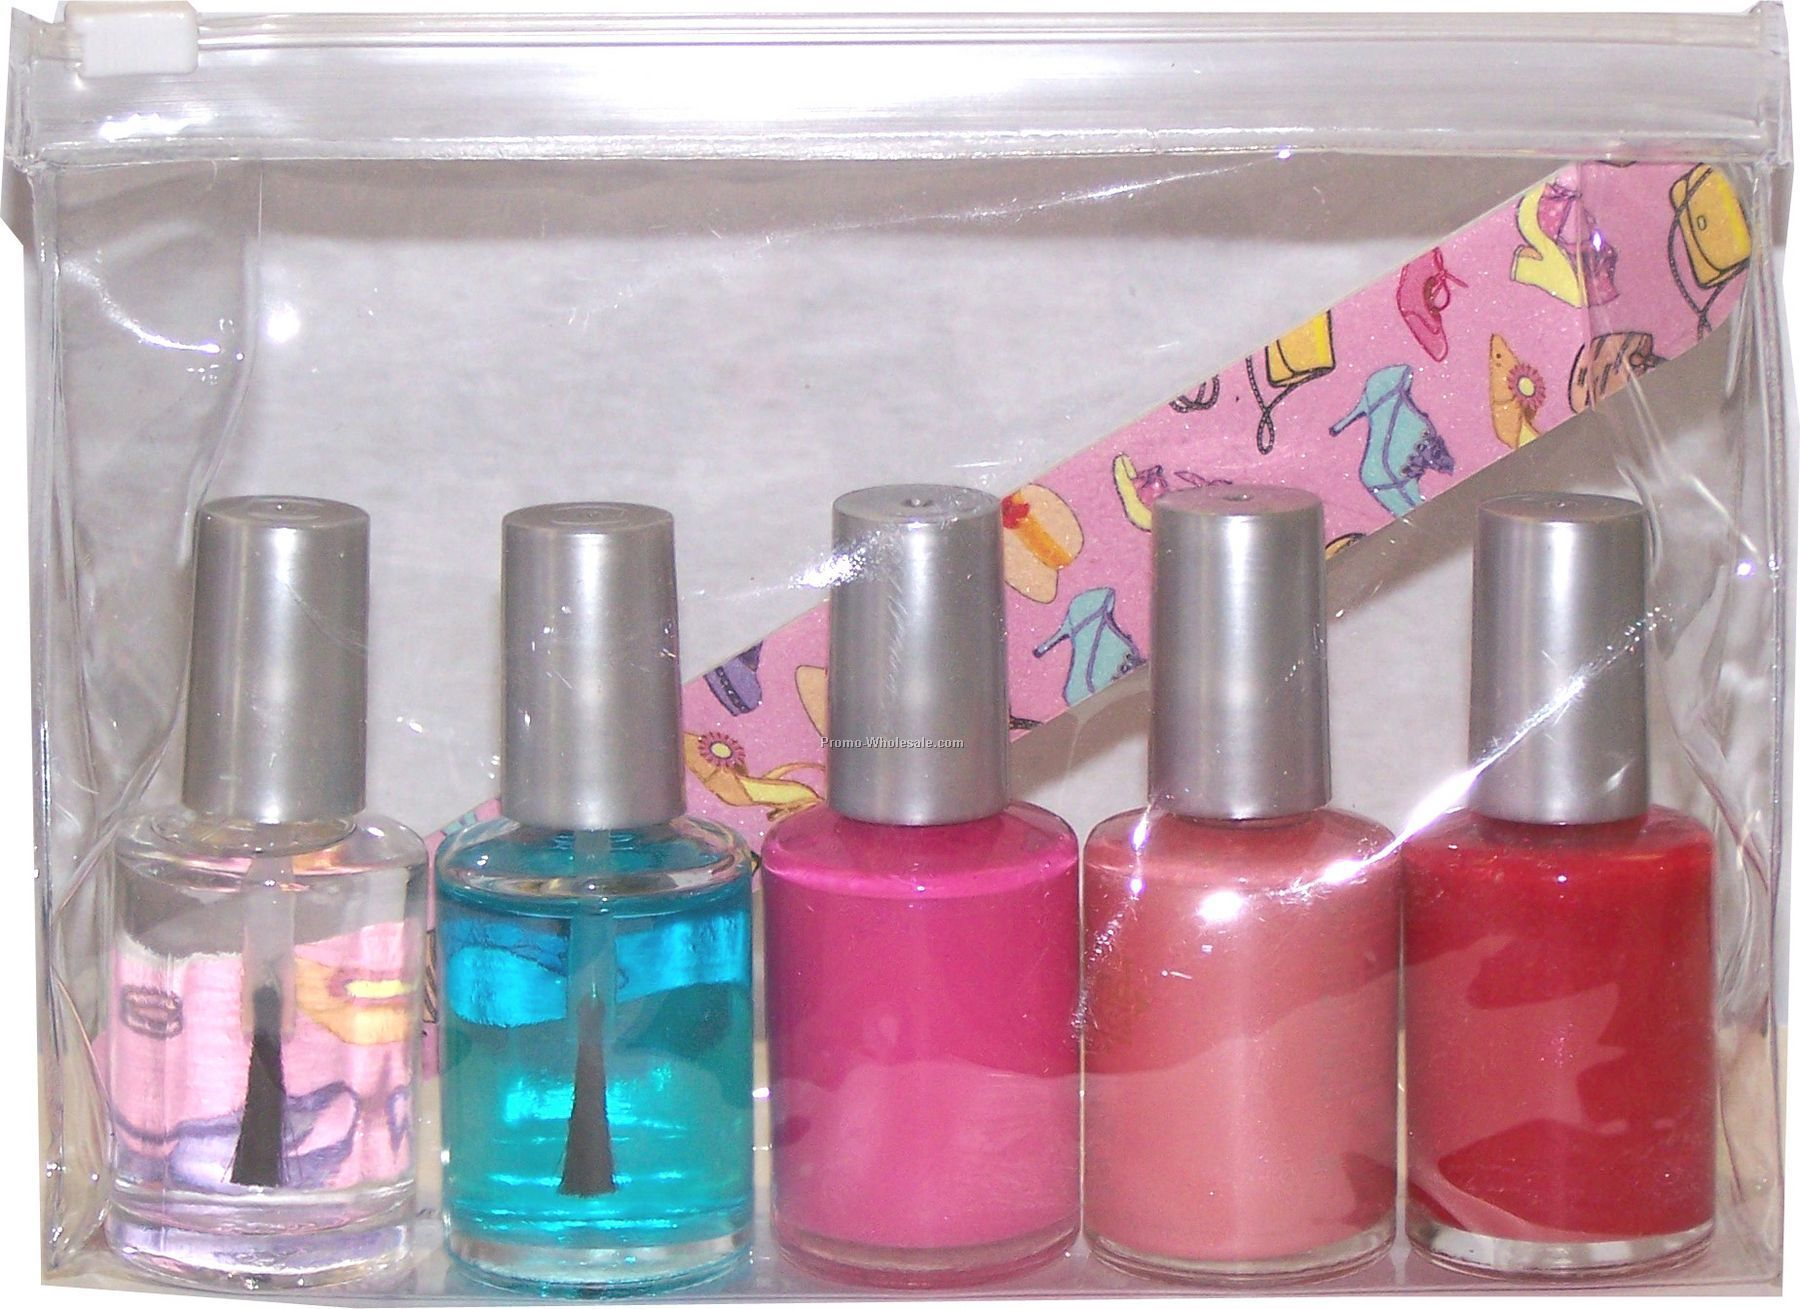 1/2 Fl. Oz Nail Polish Bottles In A 5-piece Nail Kit